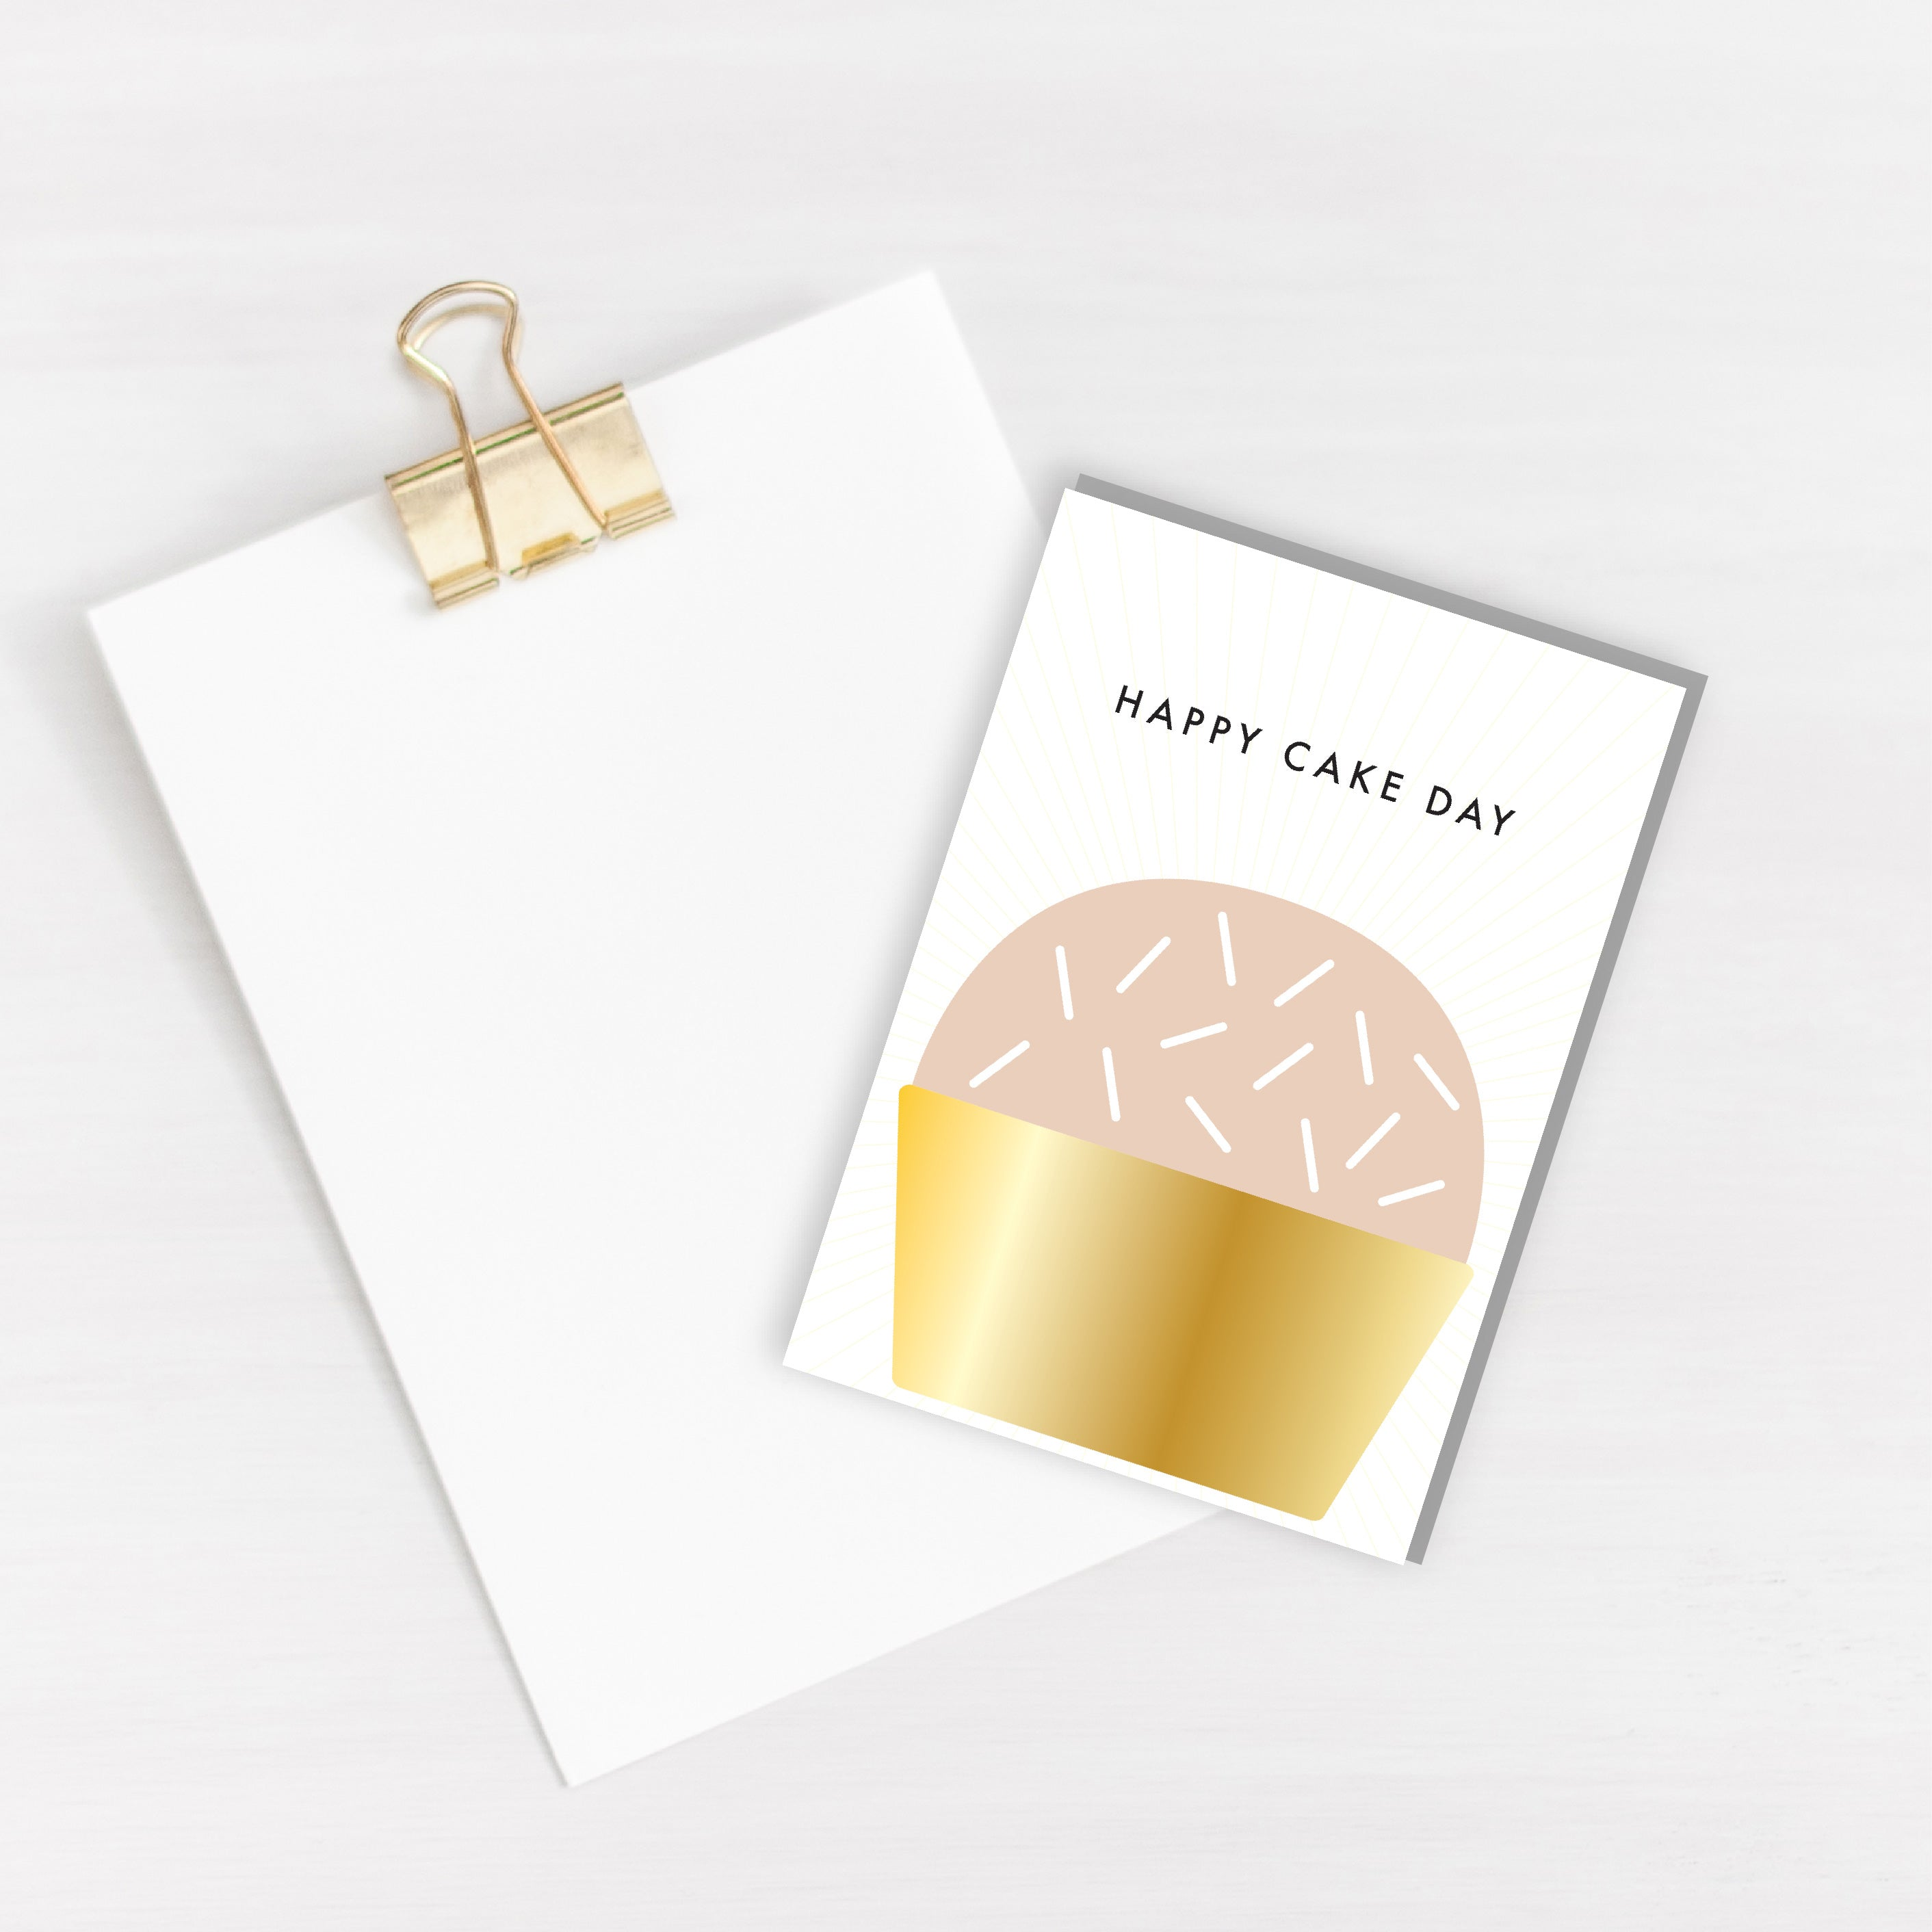 Happy Cake Day Card - Blank Inside